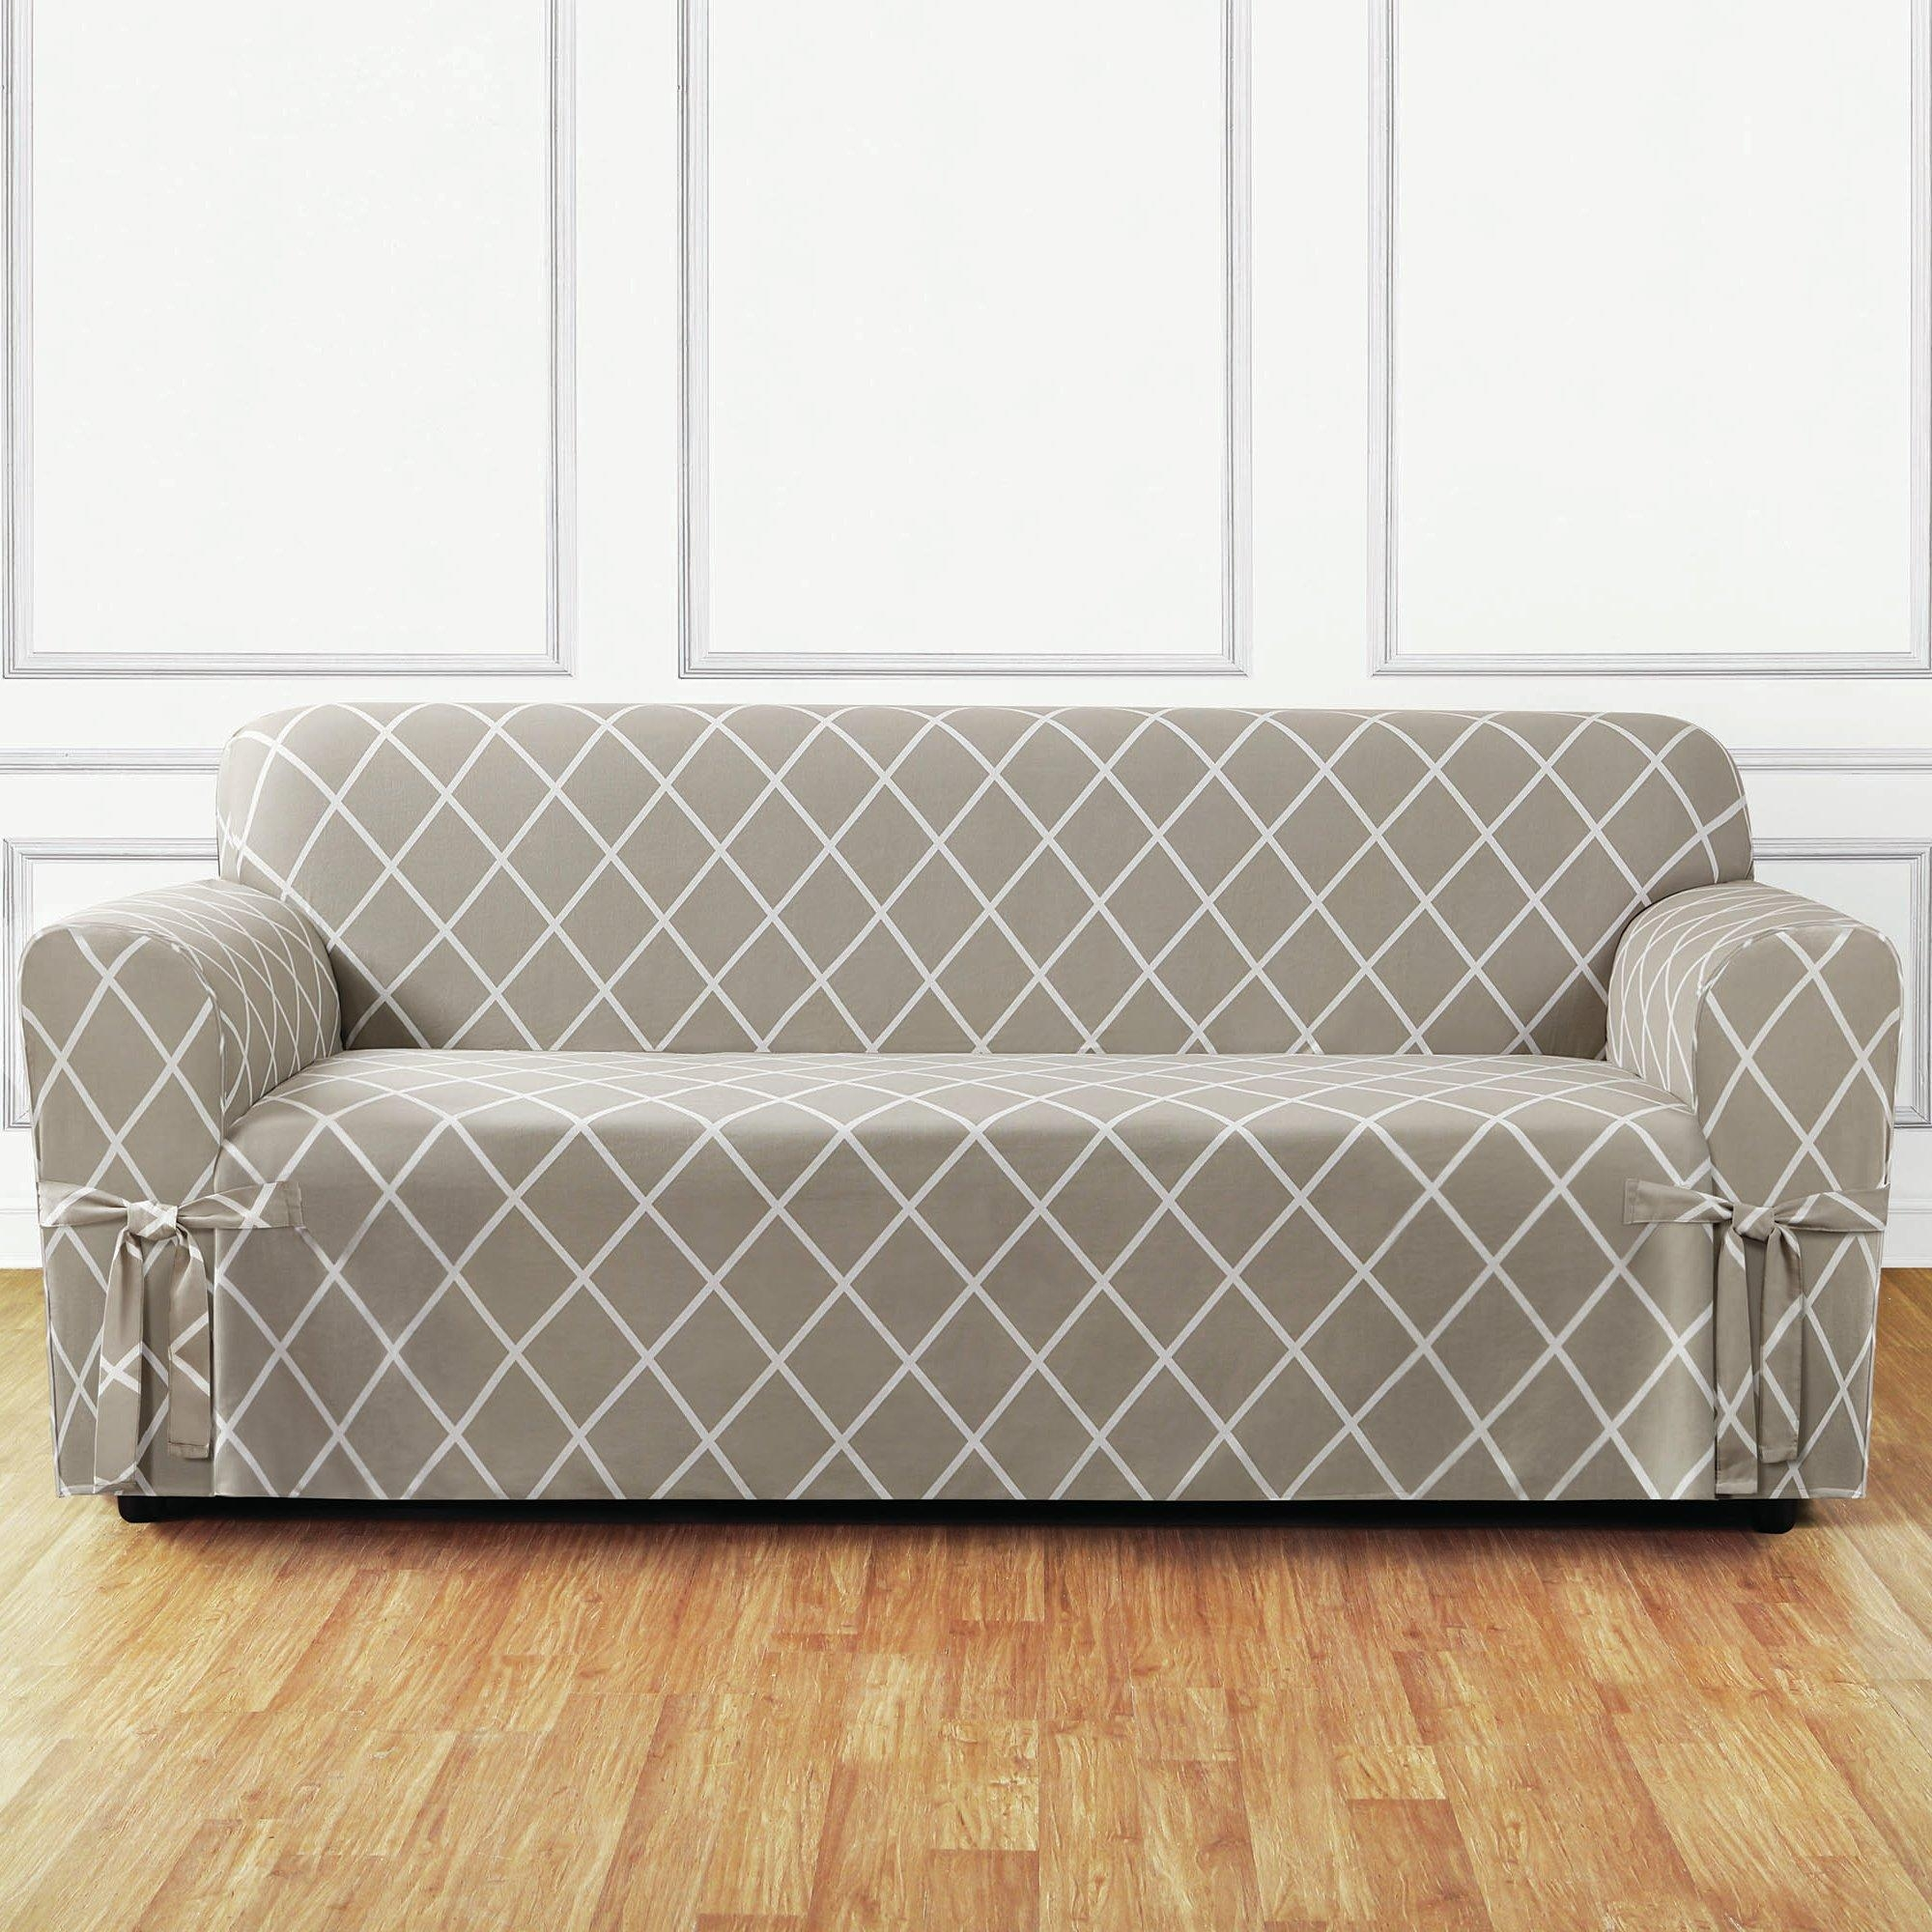 Furniture: Slipcovers For Sectional Sofa | 3 Cushion Sofa Throughout Slipcovers For 3 Cushion Sofas (Image 5 of 20)